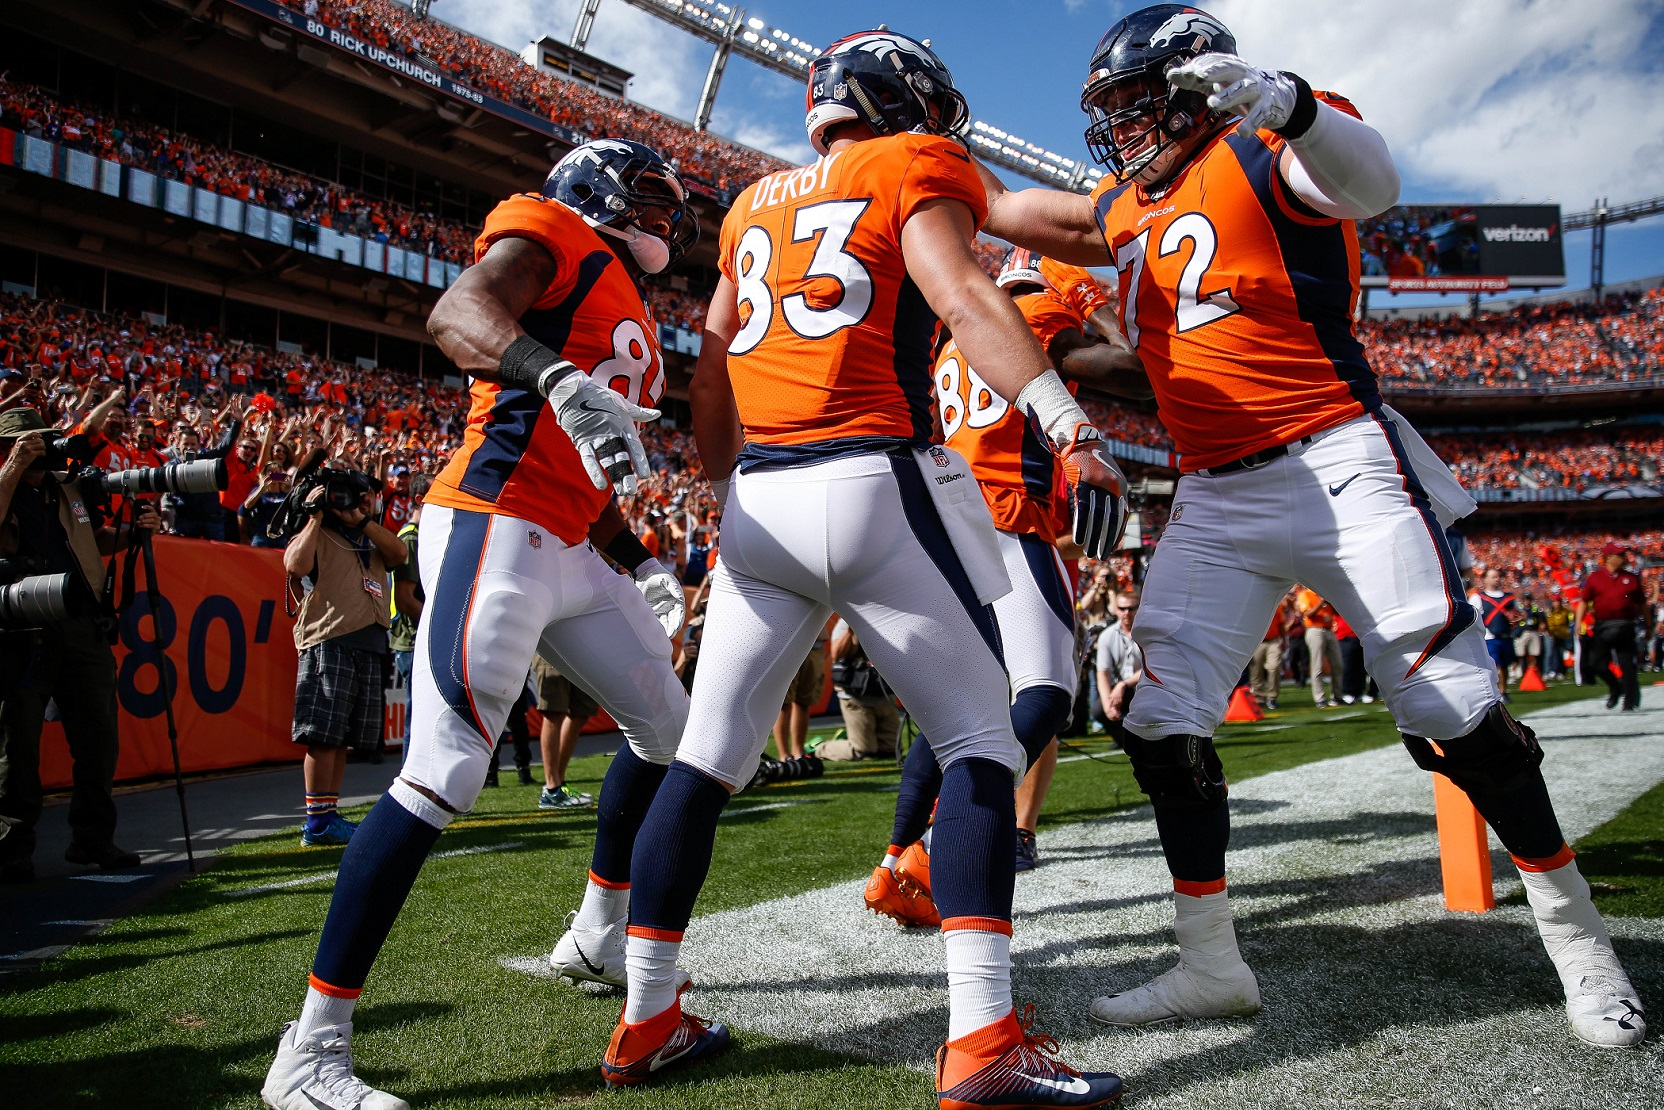 an analysis of the denver broncos Denver broncos at arizona cardinals live blog, aug 30, 2018 live updates, tweets, photos, analysis and more from the broncos preseason game against the arizona cardinals at university of phoenix stadium on aug 30, 2018.